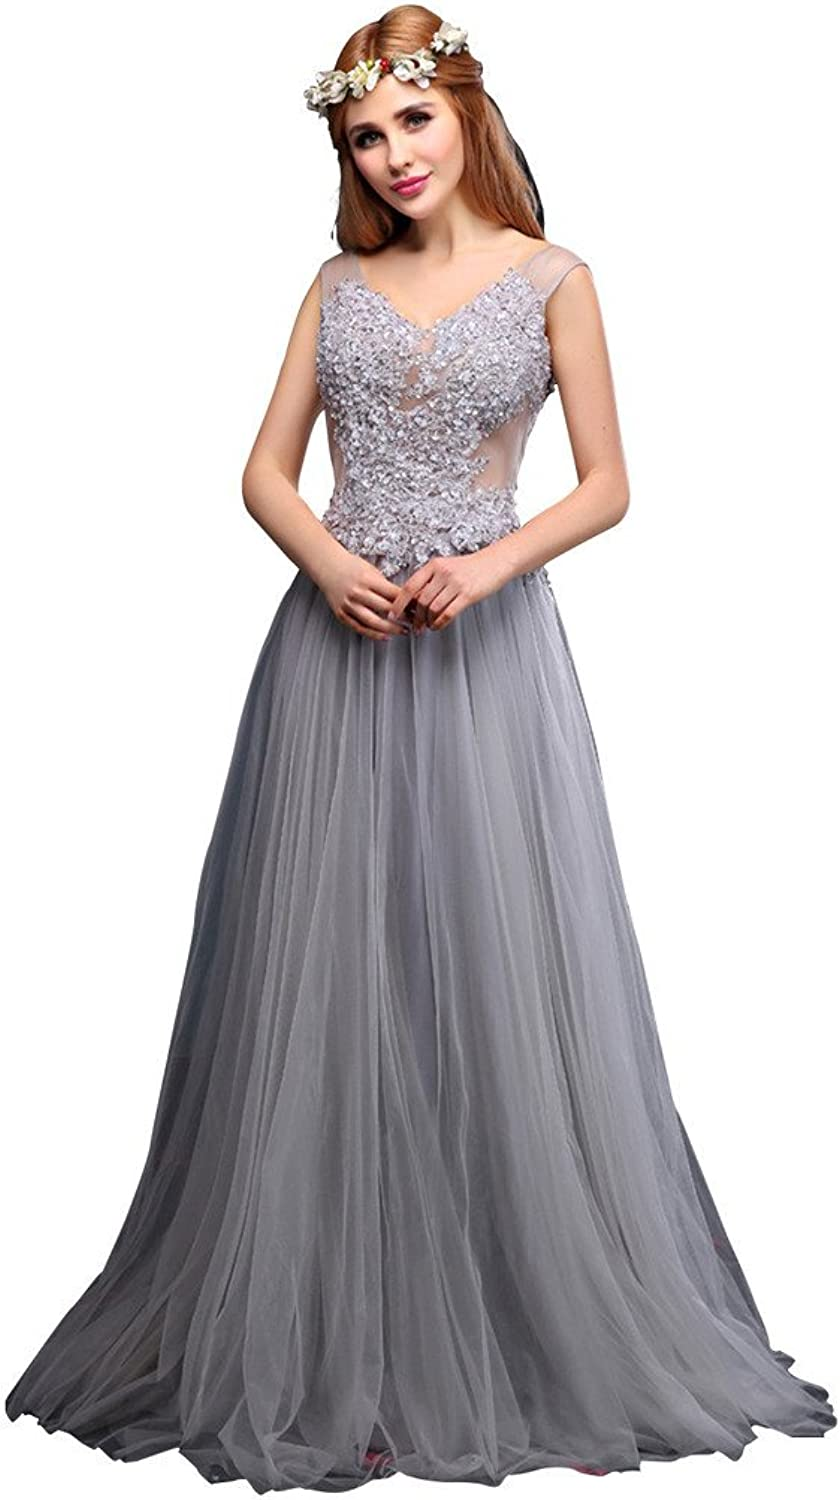 BessWedding Women's Long Backless Tulle Lace Cap Sleeve Princess Bridal Gowns